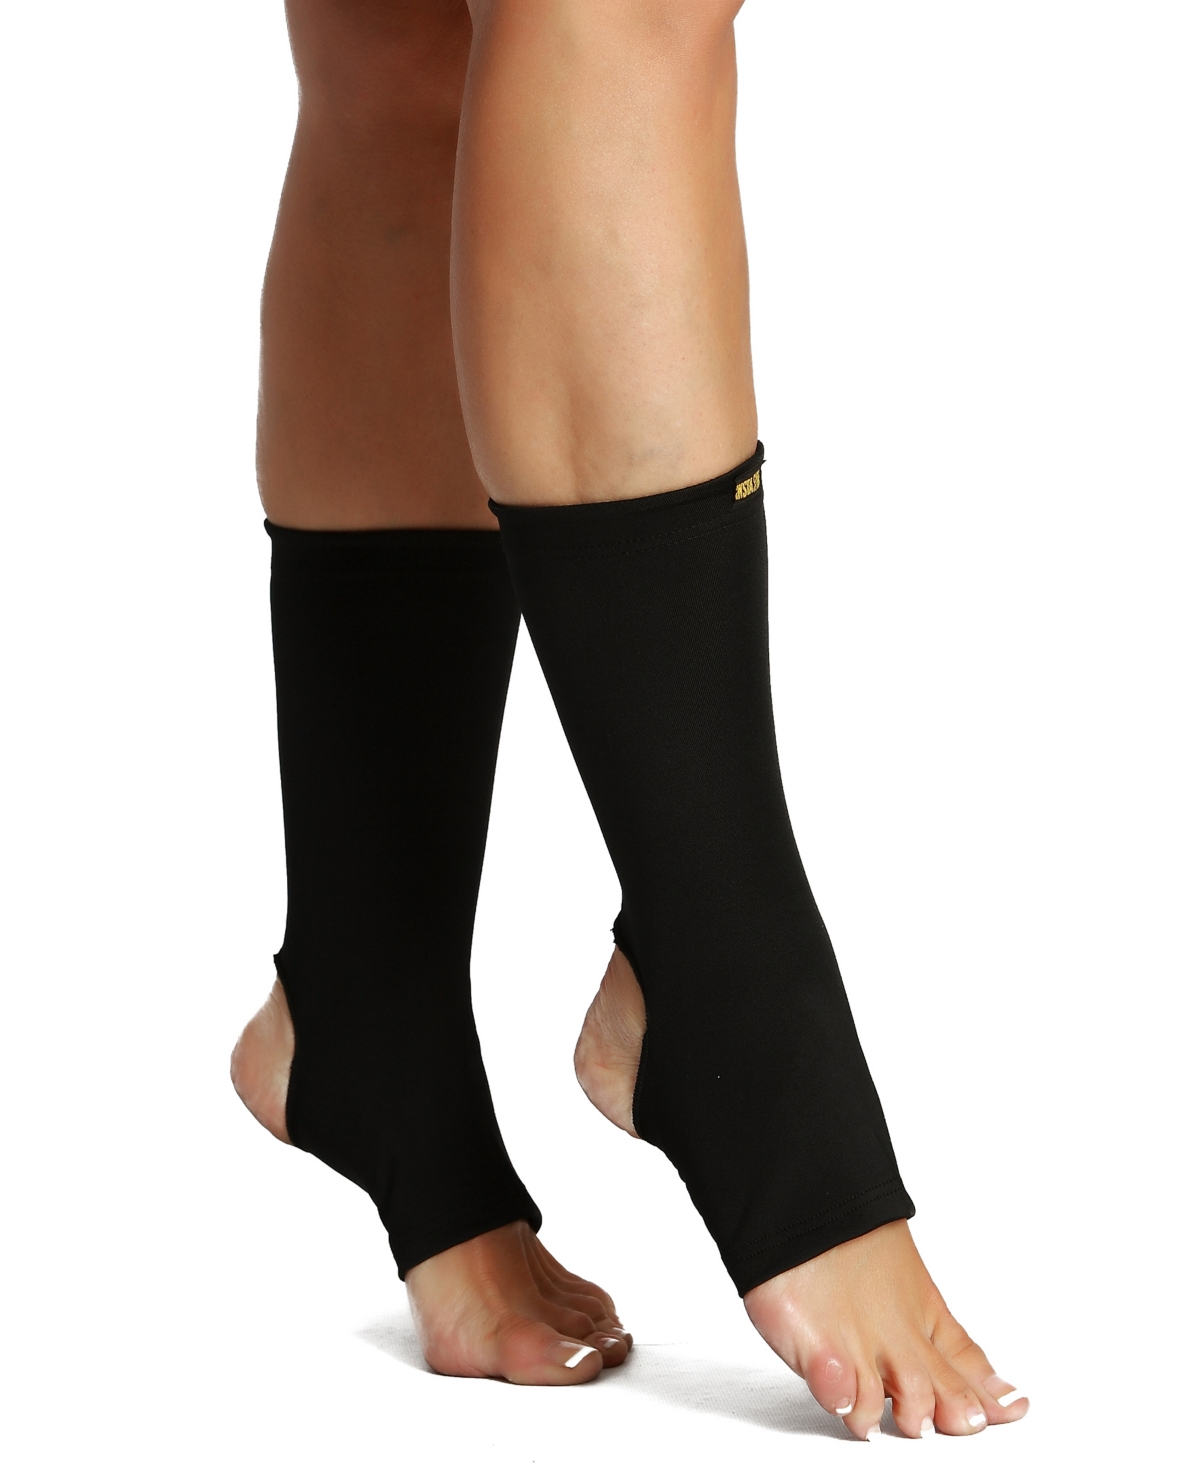 InstantFigure Powerful Compression Ankle Sleeves with Exposed Heel and Toes